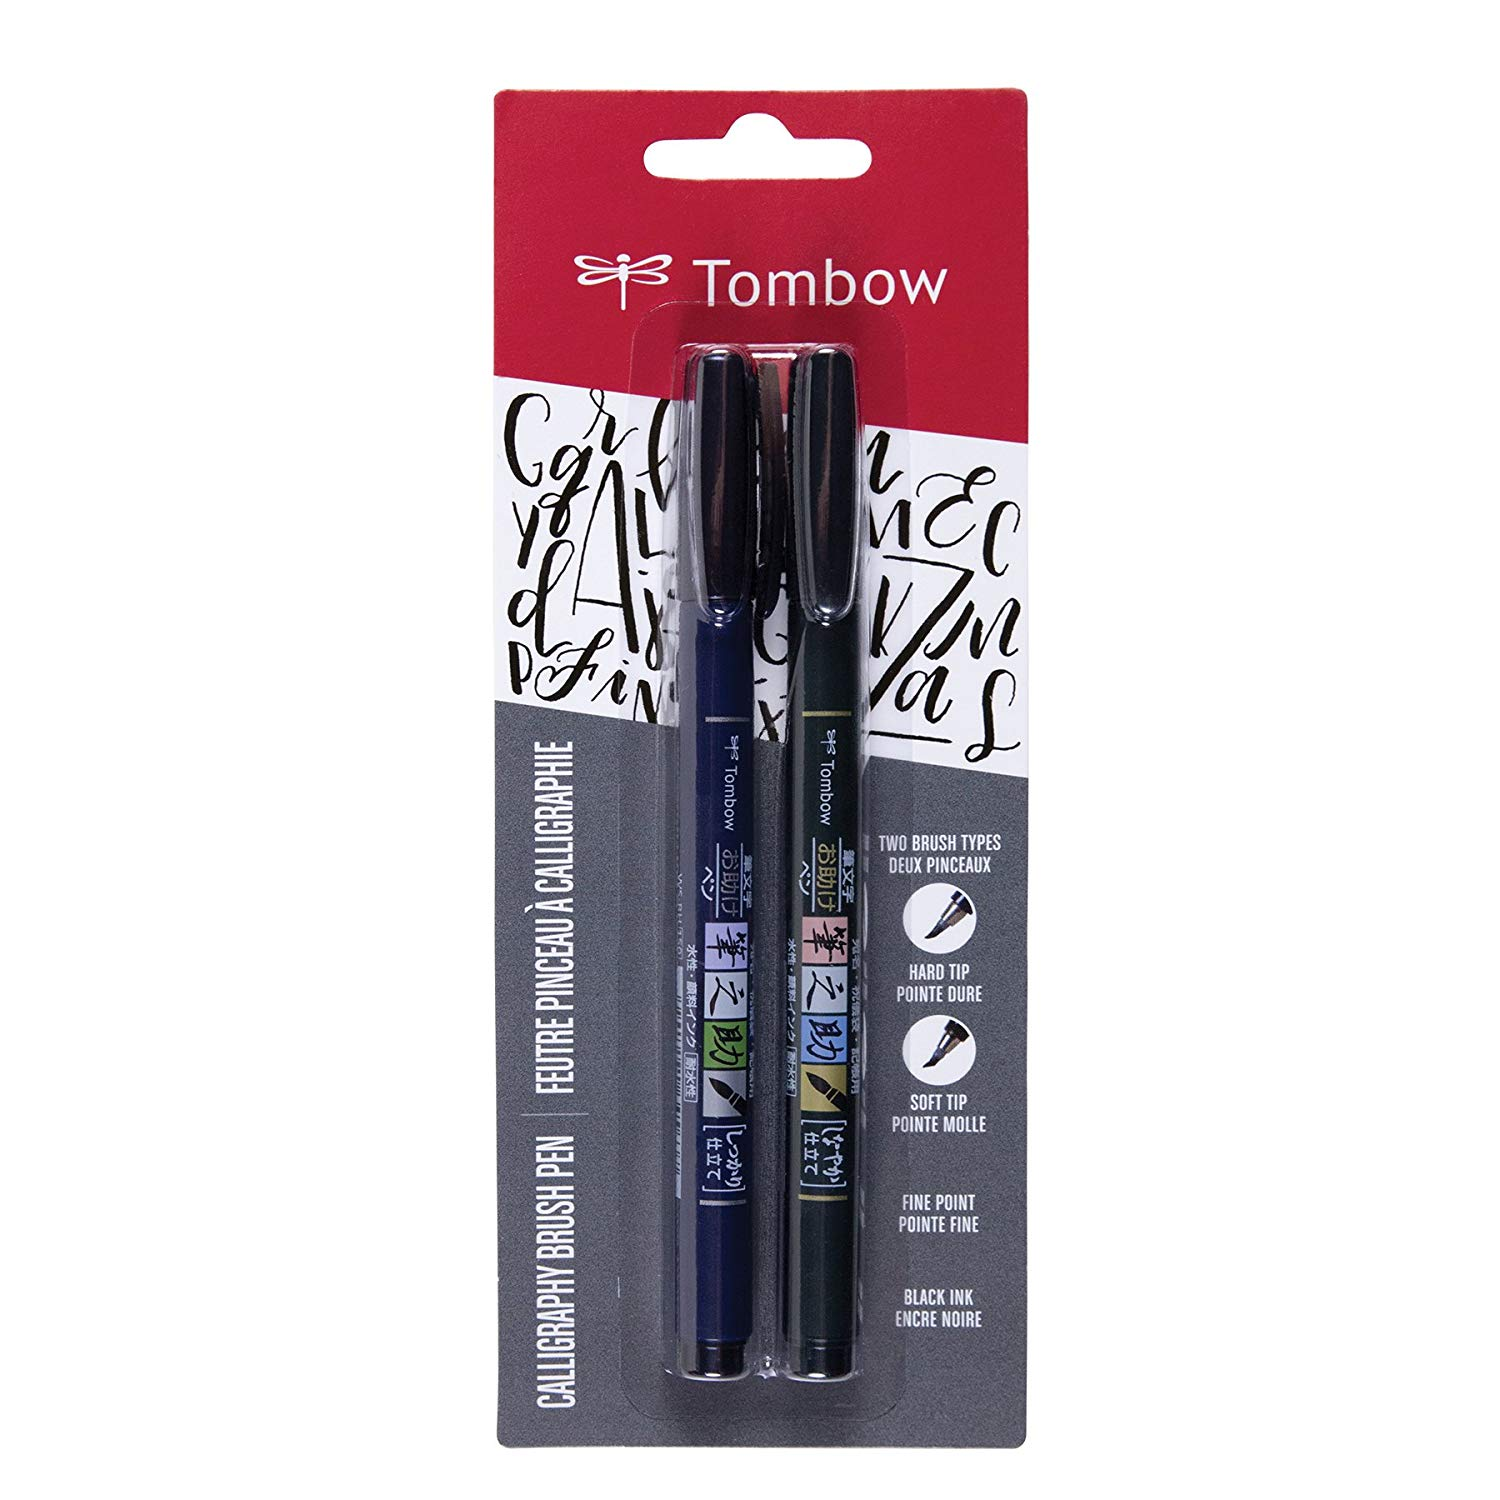 Tombow 62038 Fudenosuke Brush Pen, 2-Pack. Soft and Hard Tip Fudenosuke Brush Pens for Calligraphy and Art Drawings - Calligraphy Pens